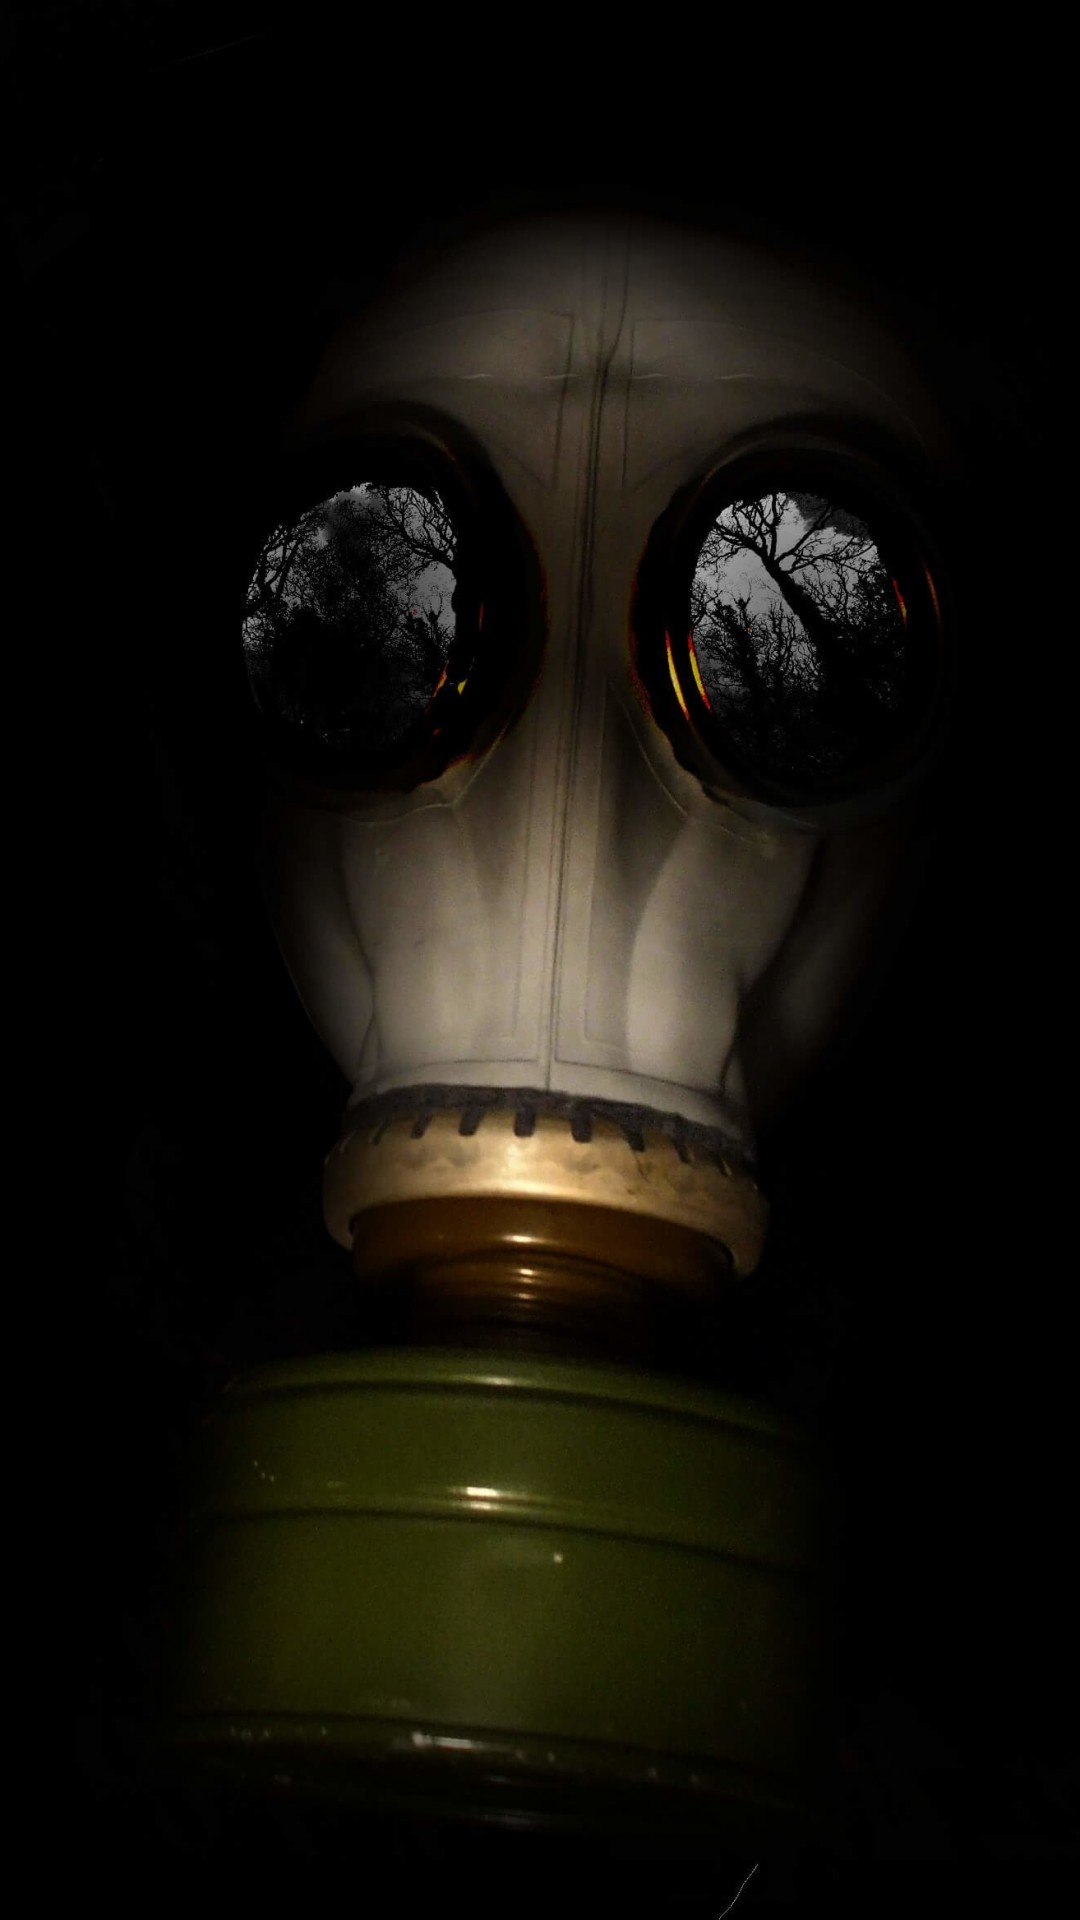 WWII Gas Mask Wallpaper for Google Nexus 5